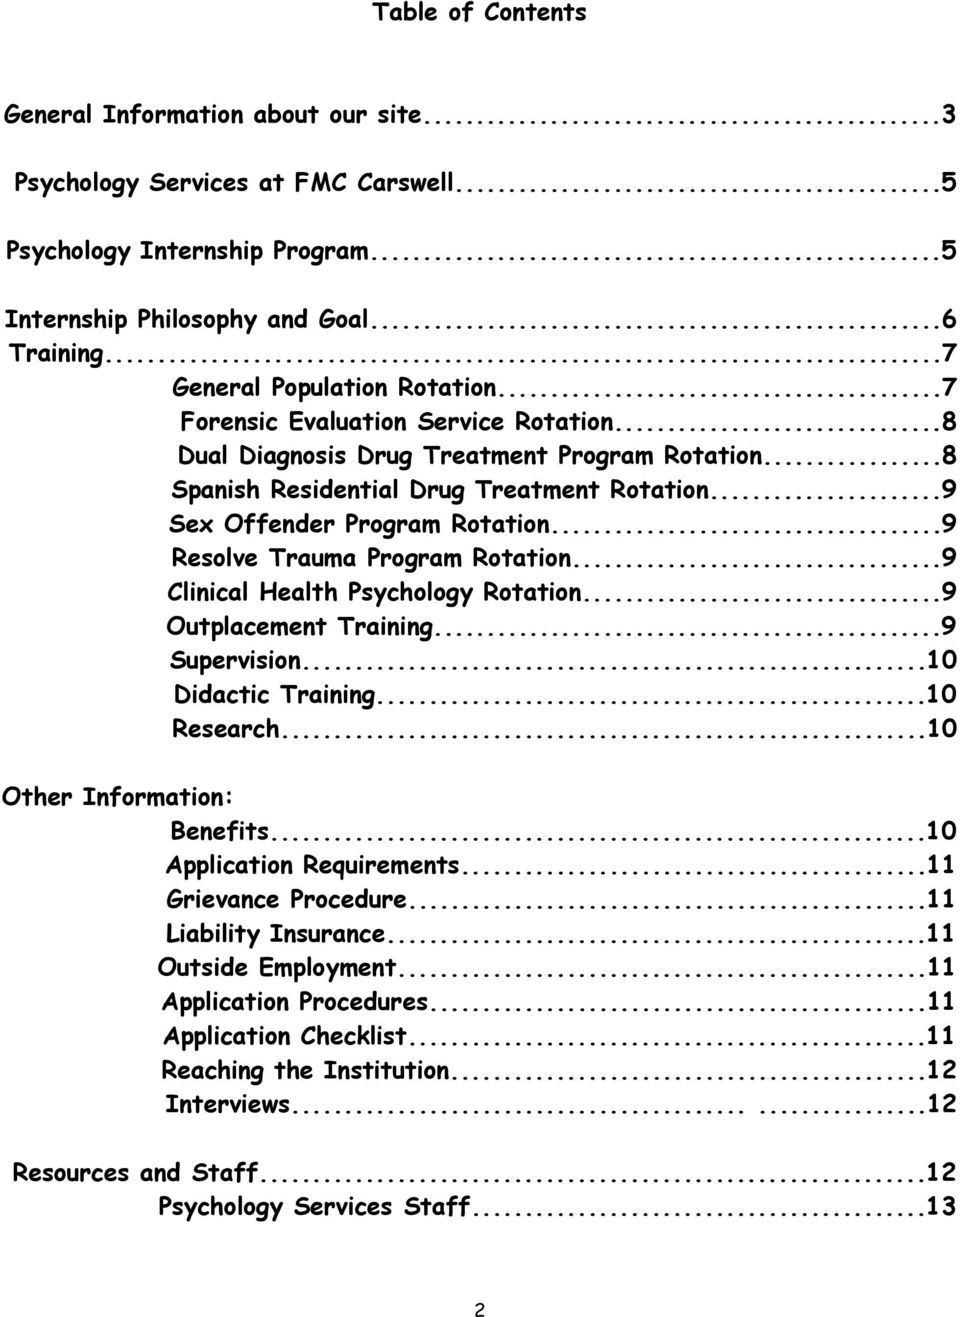 ..9 Sex Offender Program Rotation...9 Resolve Trauma Program Rotation...9 Clinical Health Psychology Rotation...9 Outplacement Training...9 Supervision...10 Didactic Training...10 Research.